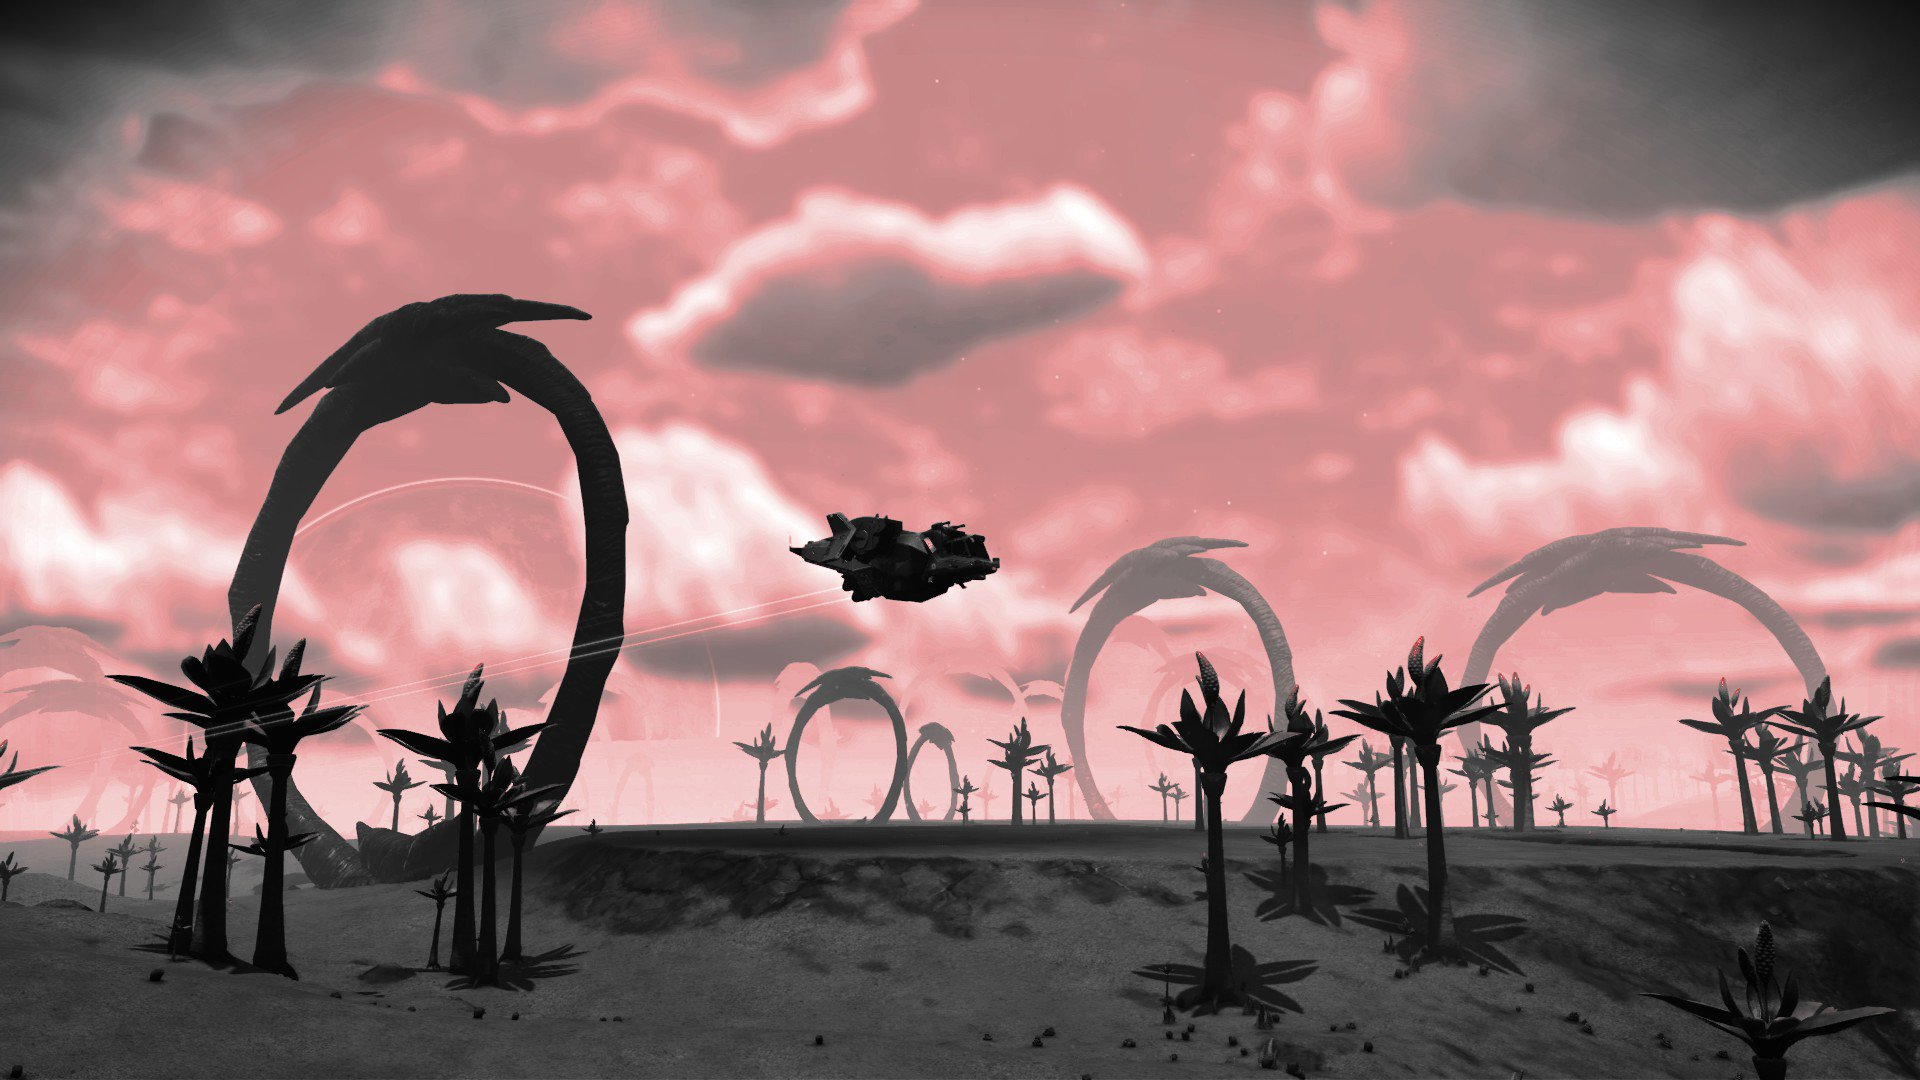 No Man's Sky - A spaceship flies across the horizon of an eerie red skied planet with giant stone rings dotting the landscape.